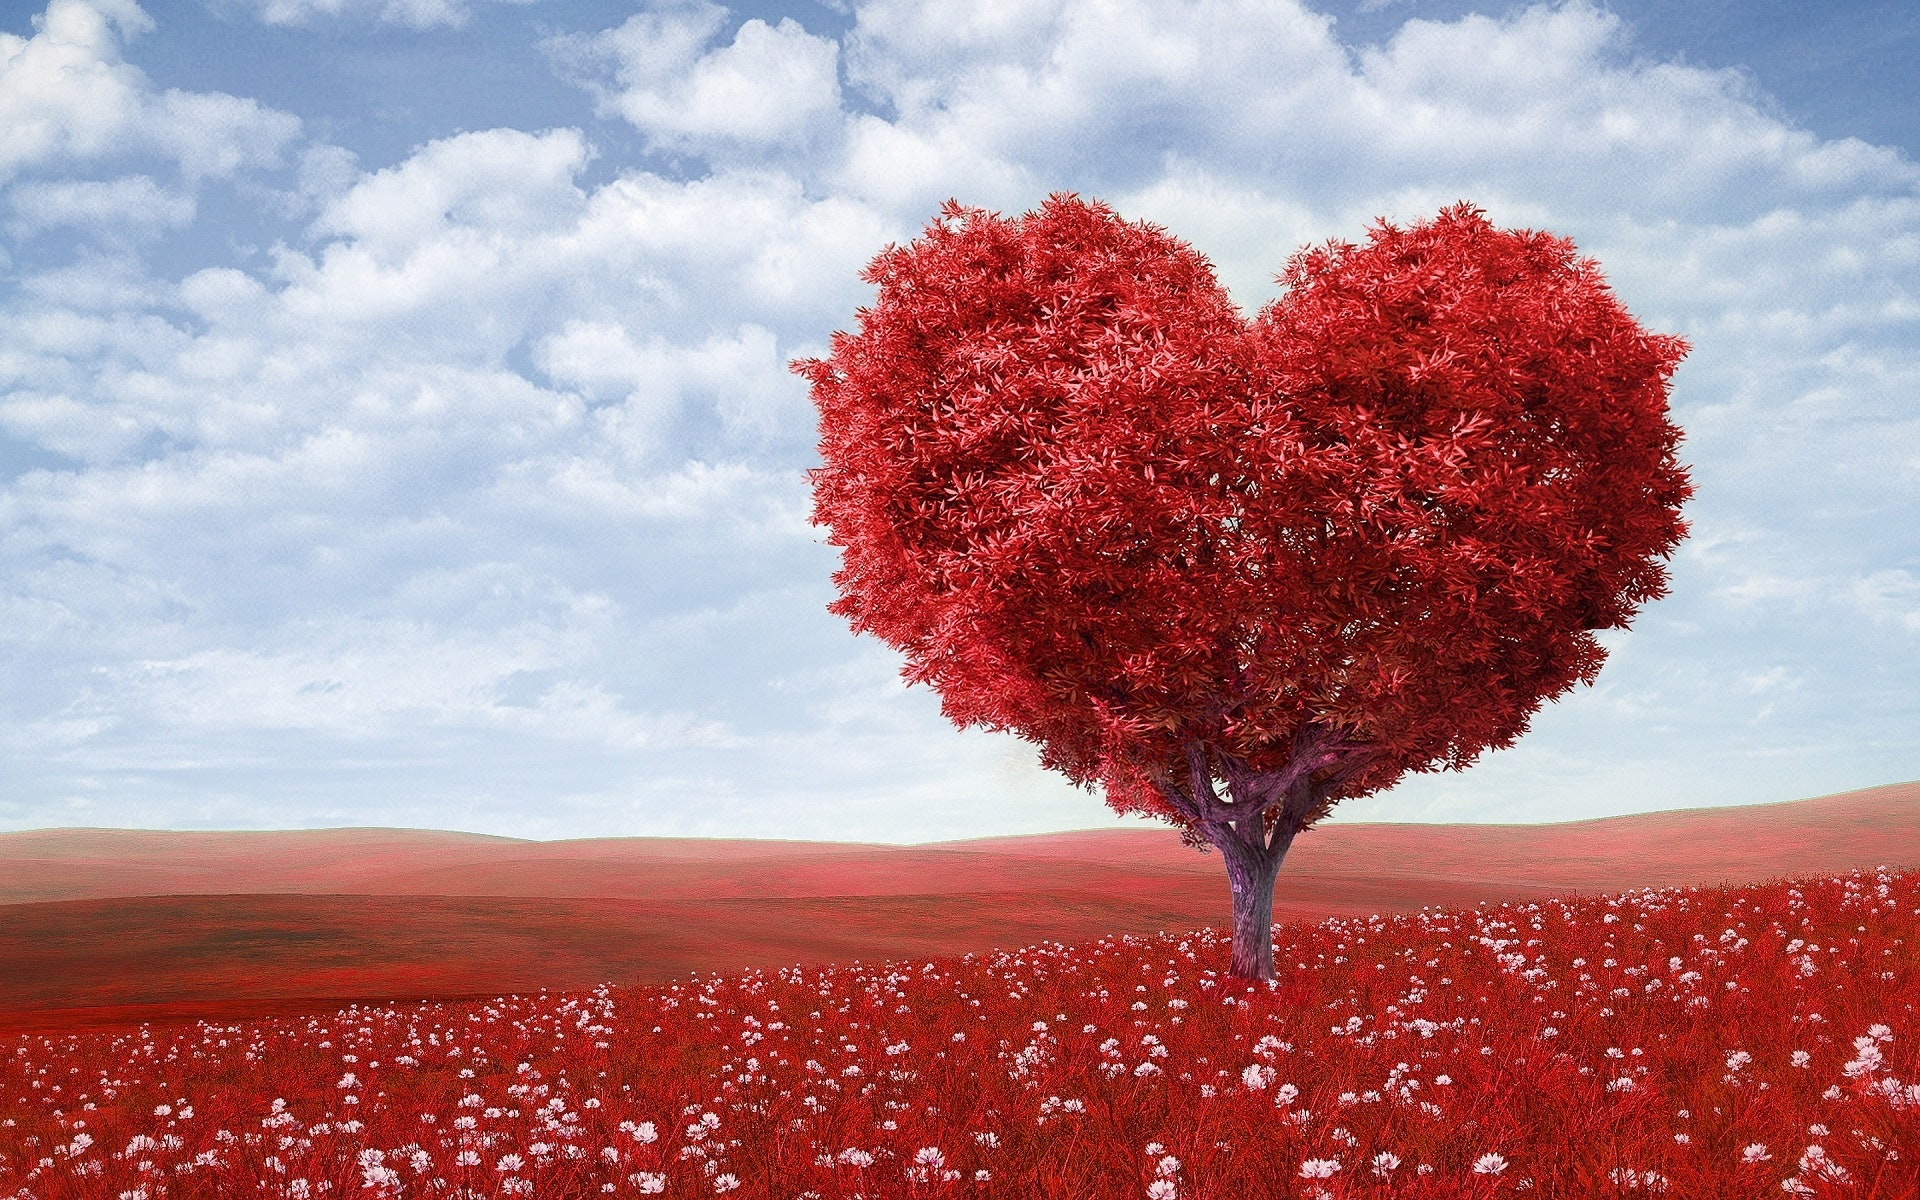 heart red leafed tree on red field � free stock photoPhoto #1